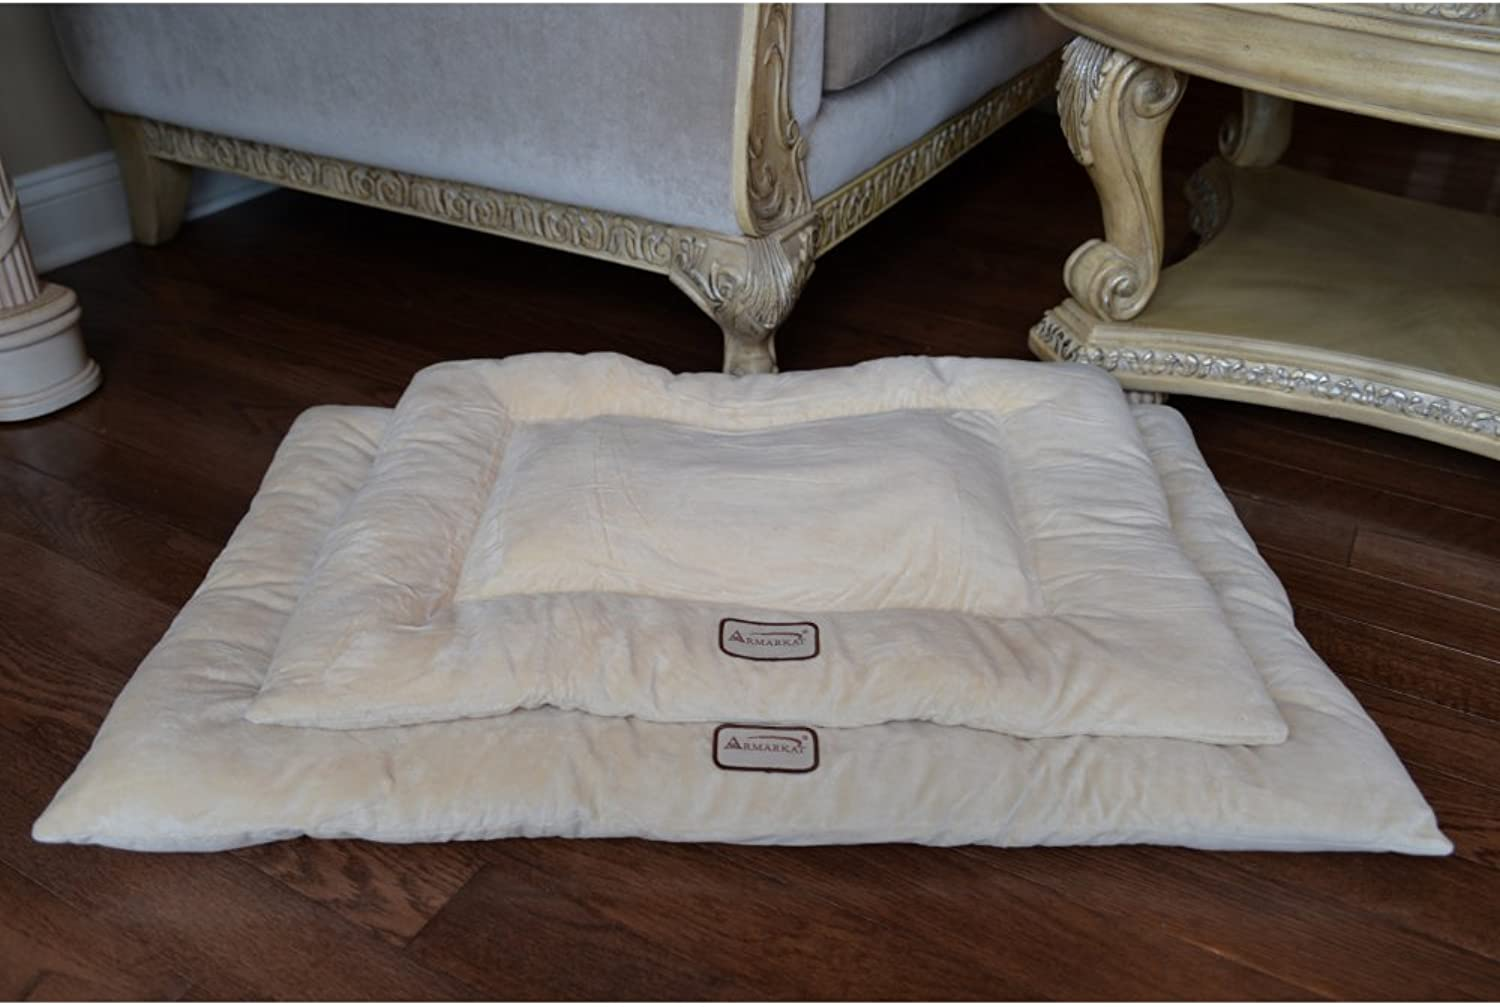 Armarkat Pet Bed Mat 27Inch by 19Inch by 2.5Inch M01Medium, Beige